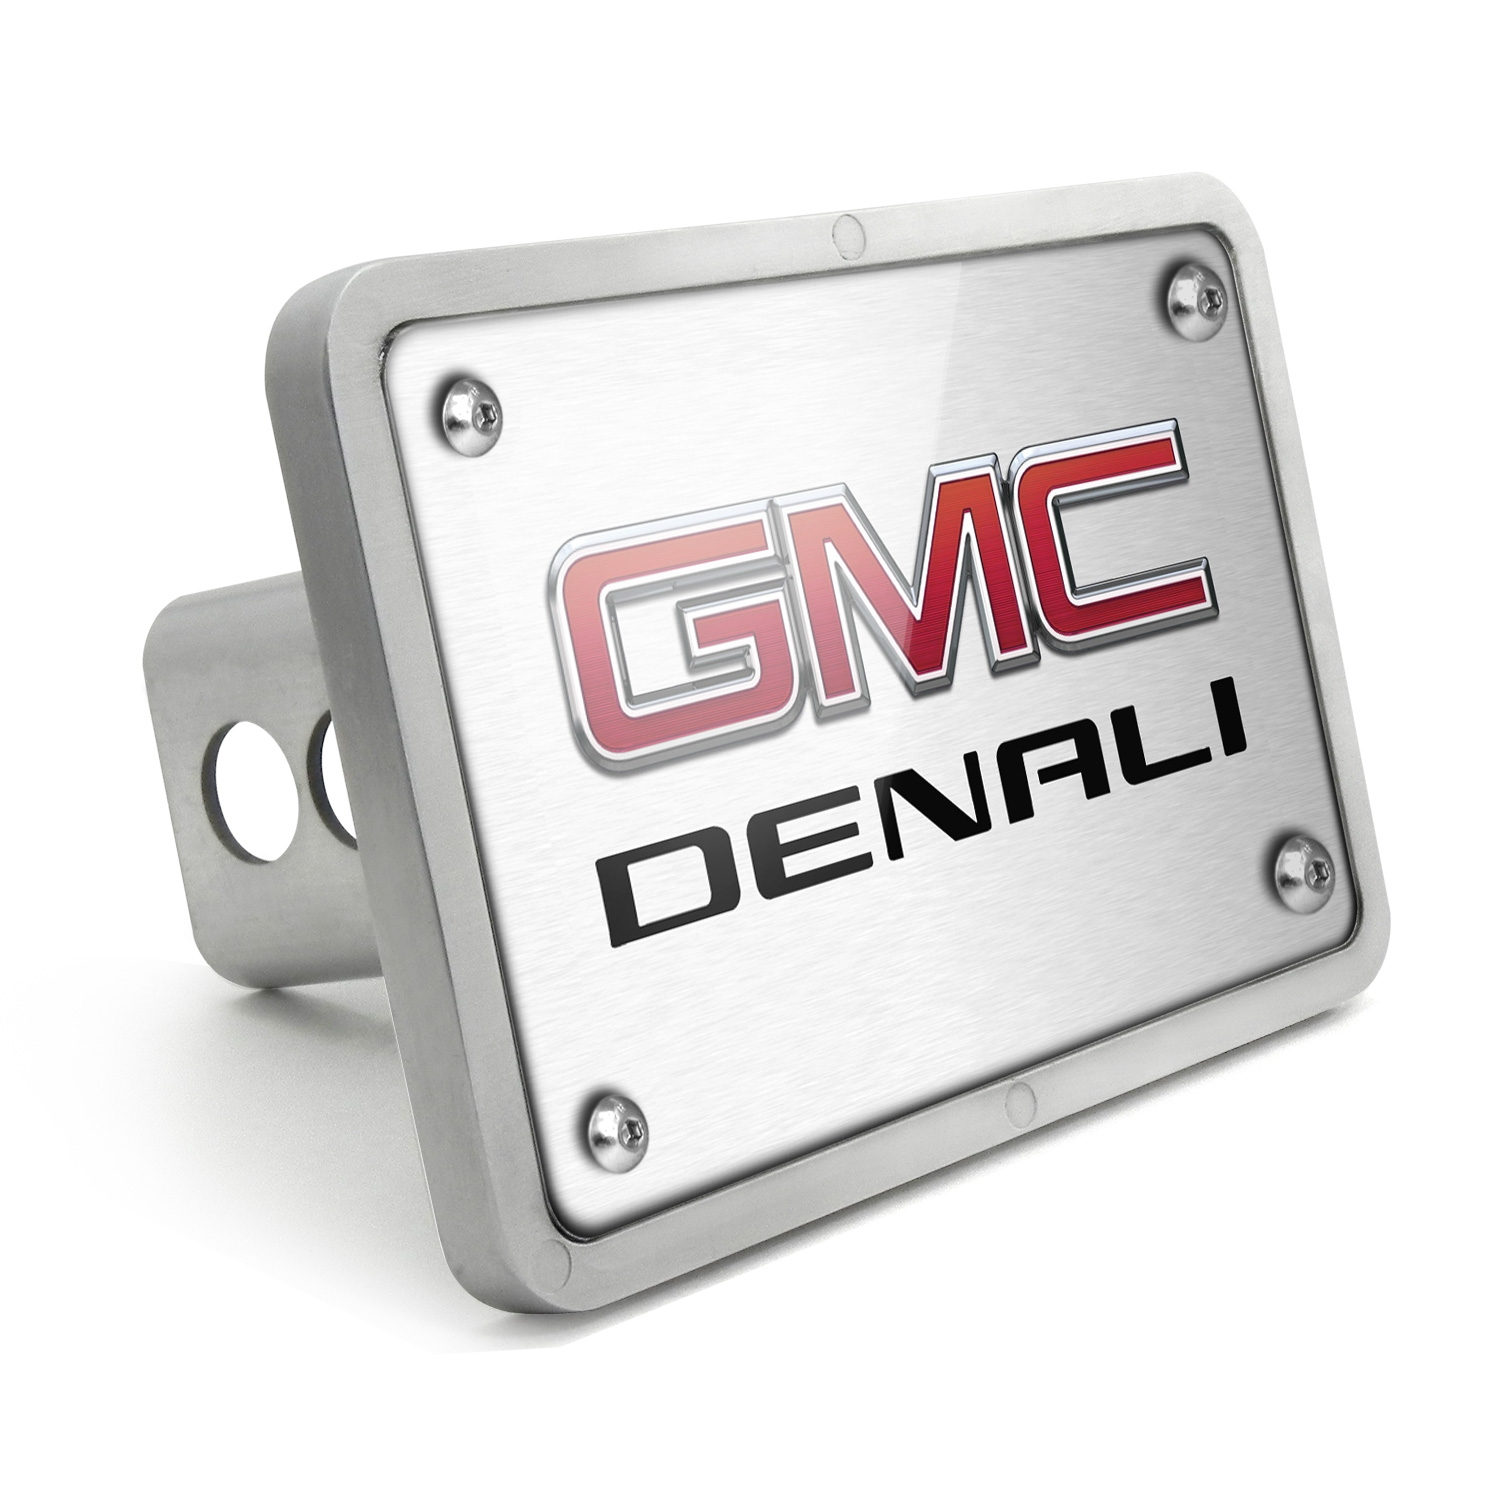 GMC Denali UV Graphic Brushed Silver Billet Aluminum 2 inch Tow Hitch Cover